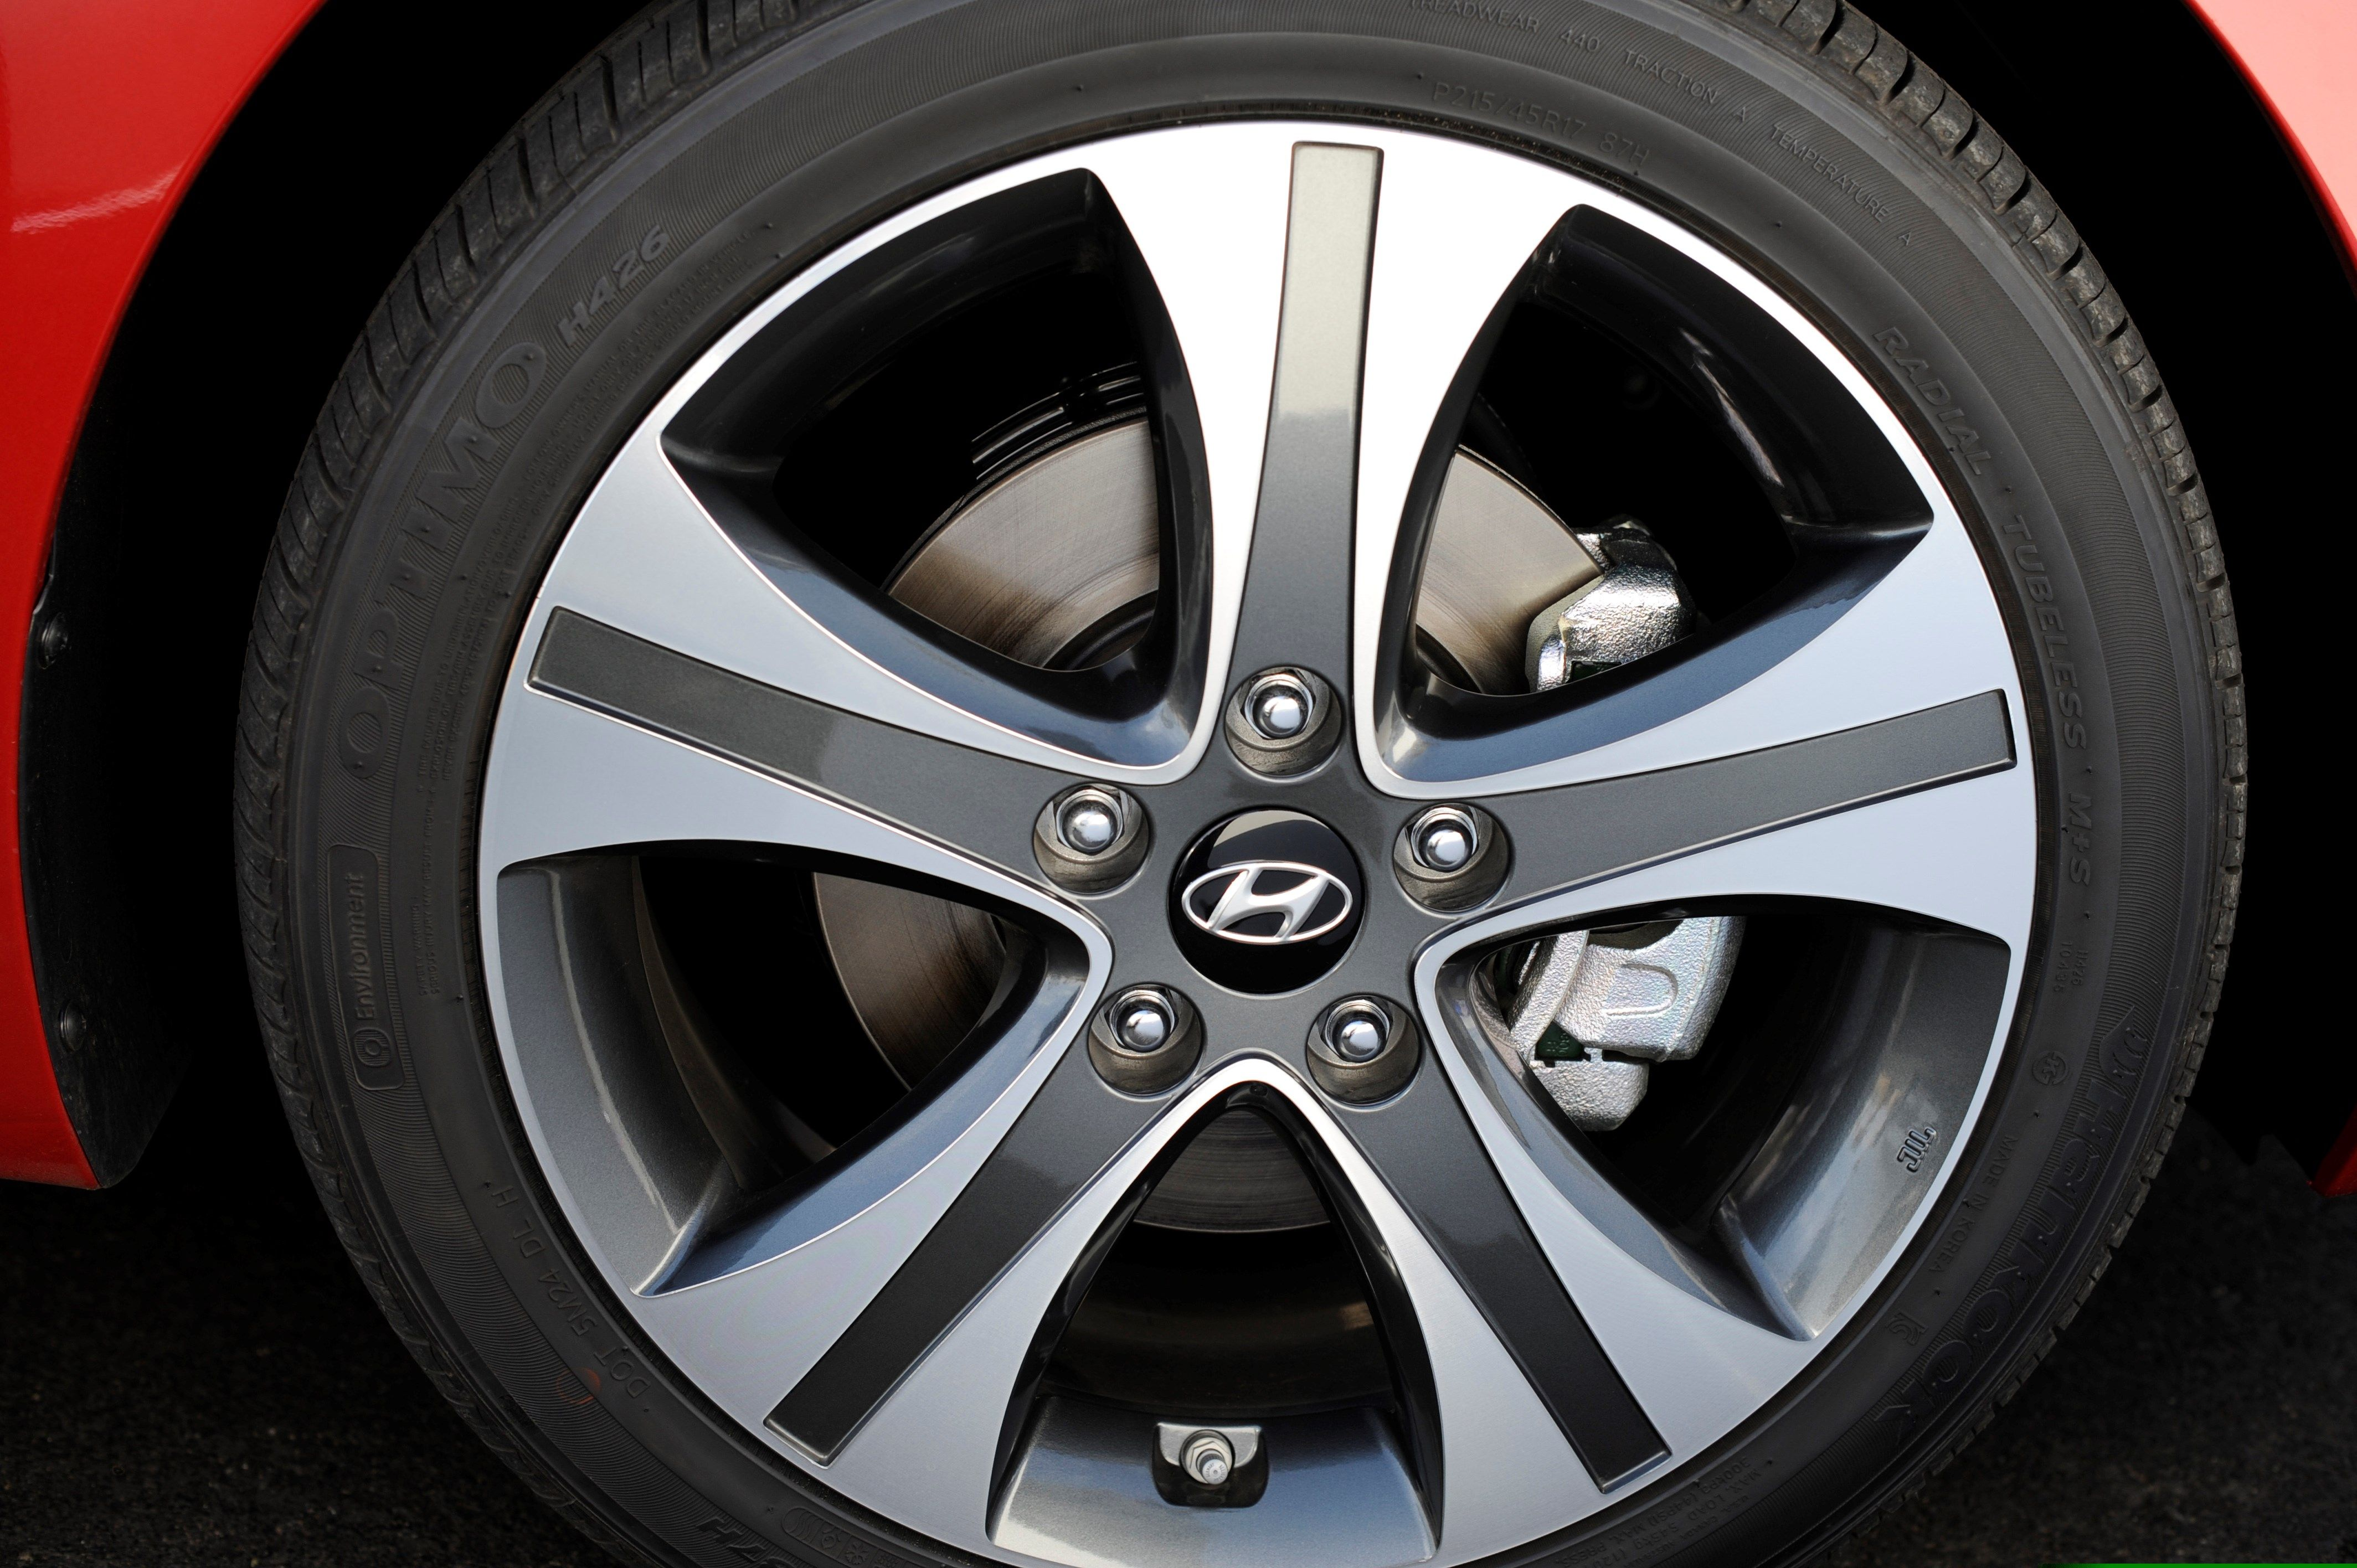 2015 hyundai sonata pricing options and specifications cleanmpg - 2014 Hyundai Elantra Sport Alloy Rims